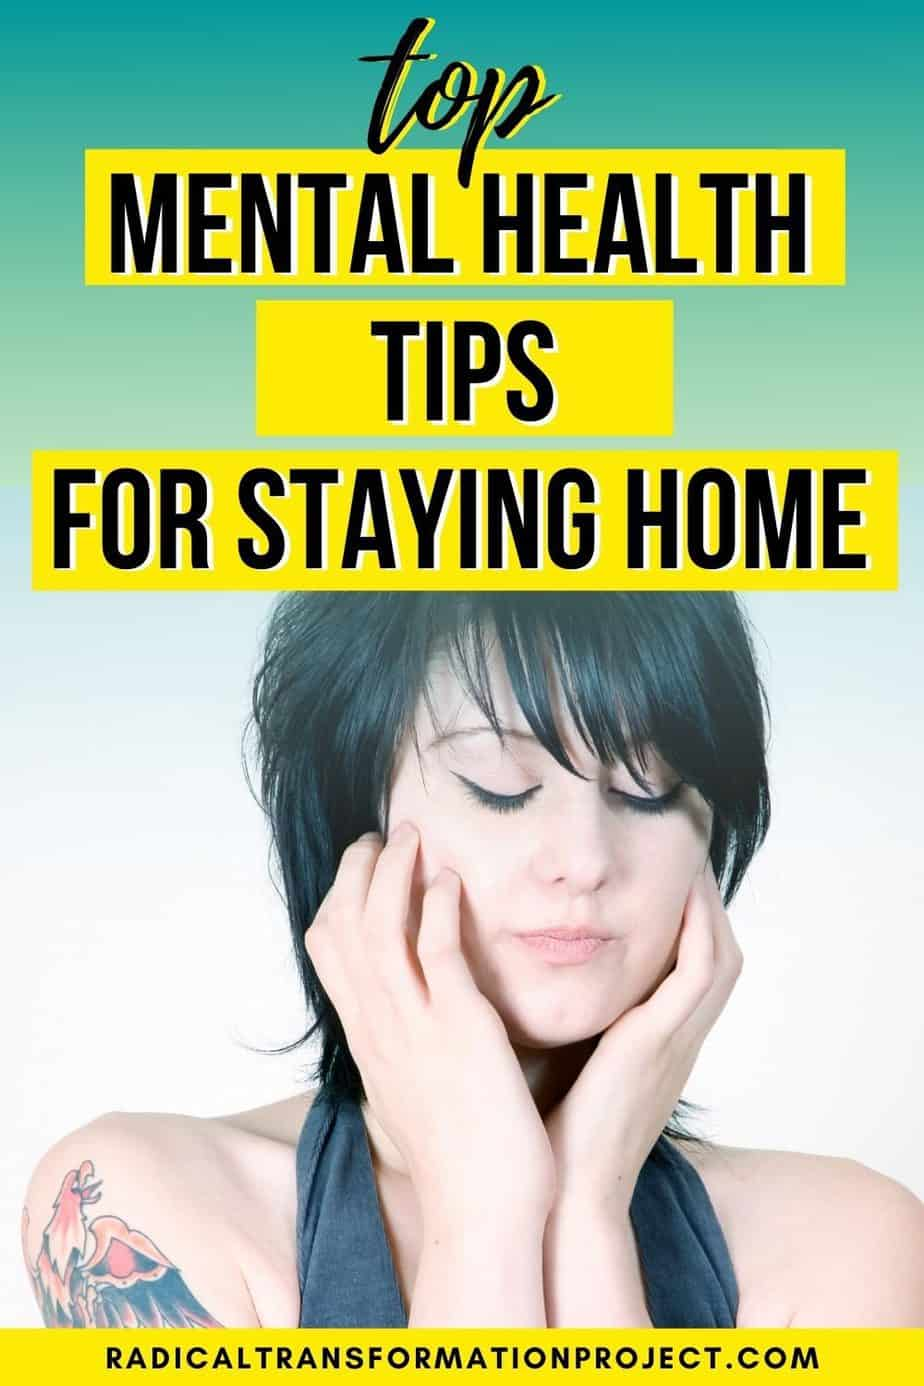 mental health tips for staying home